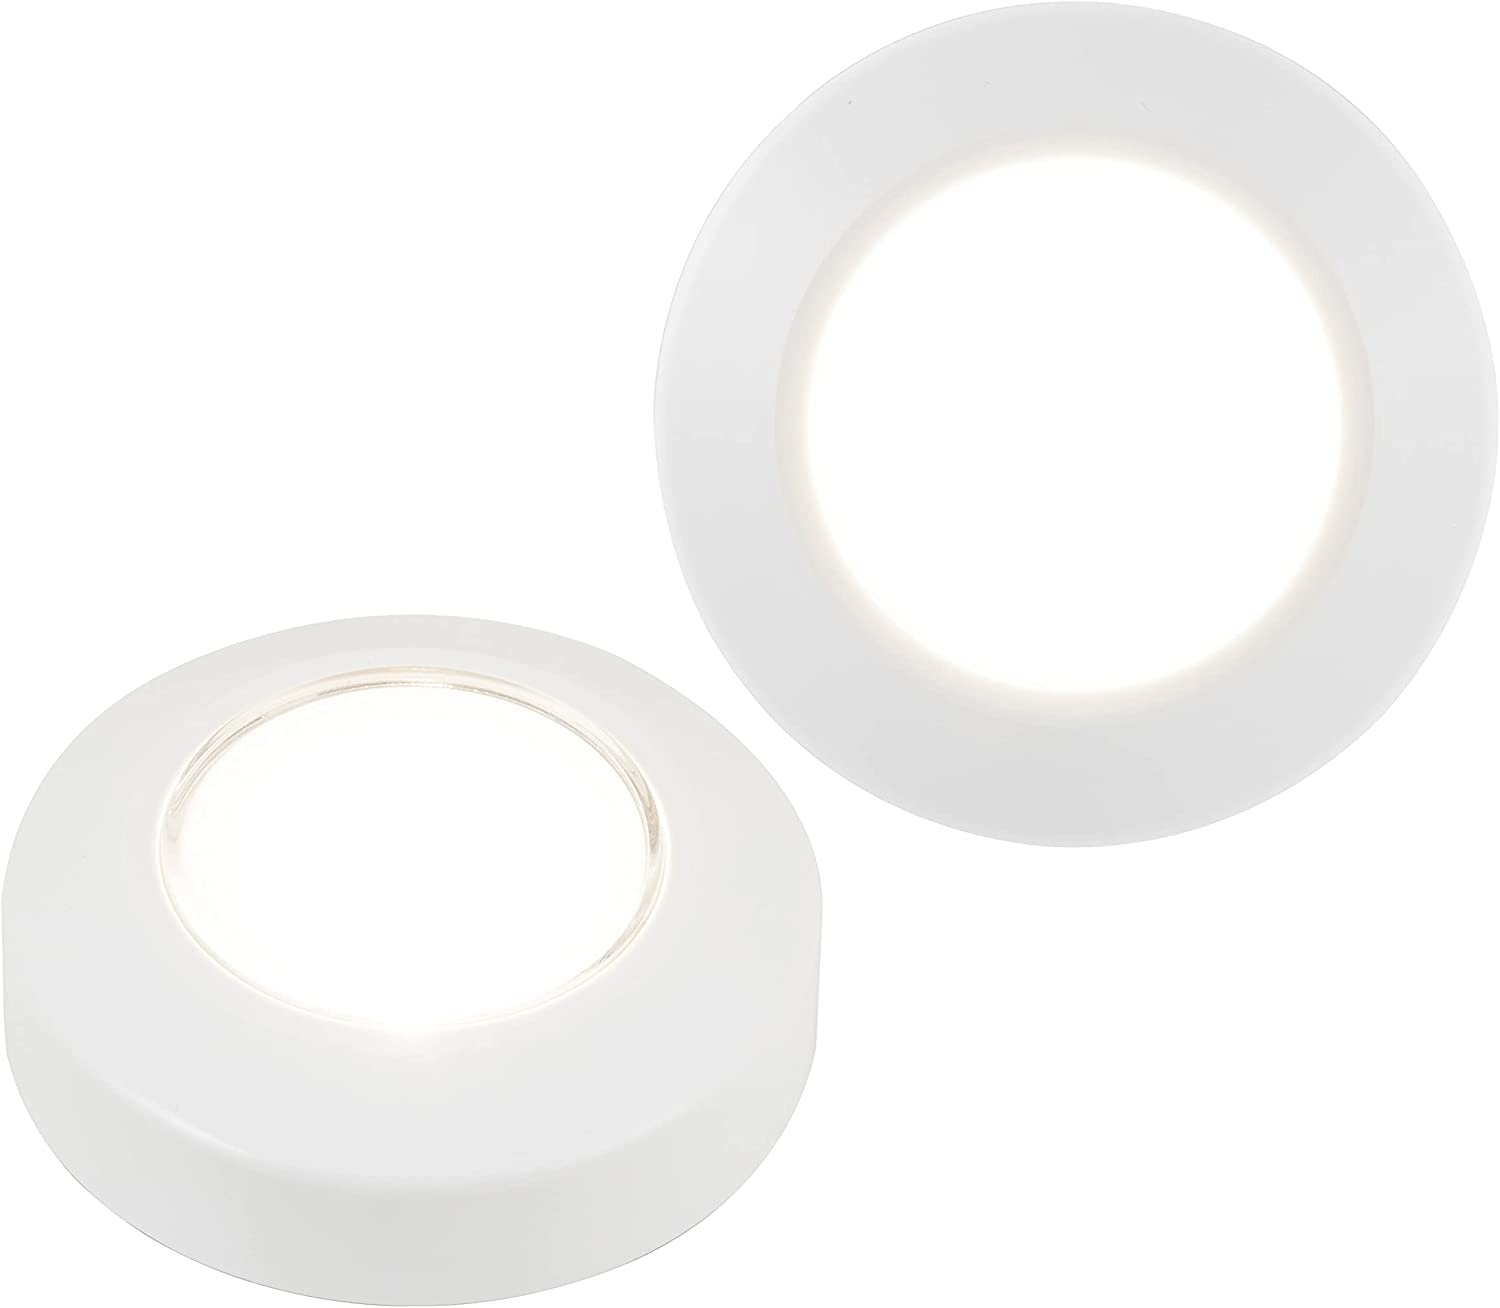 Energizer Push LED Soft Special Campaign Accent Fashion Kitchen Closet Oper Battery